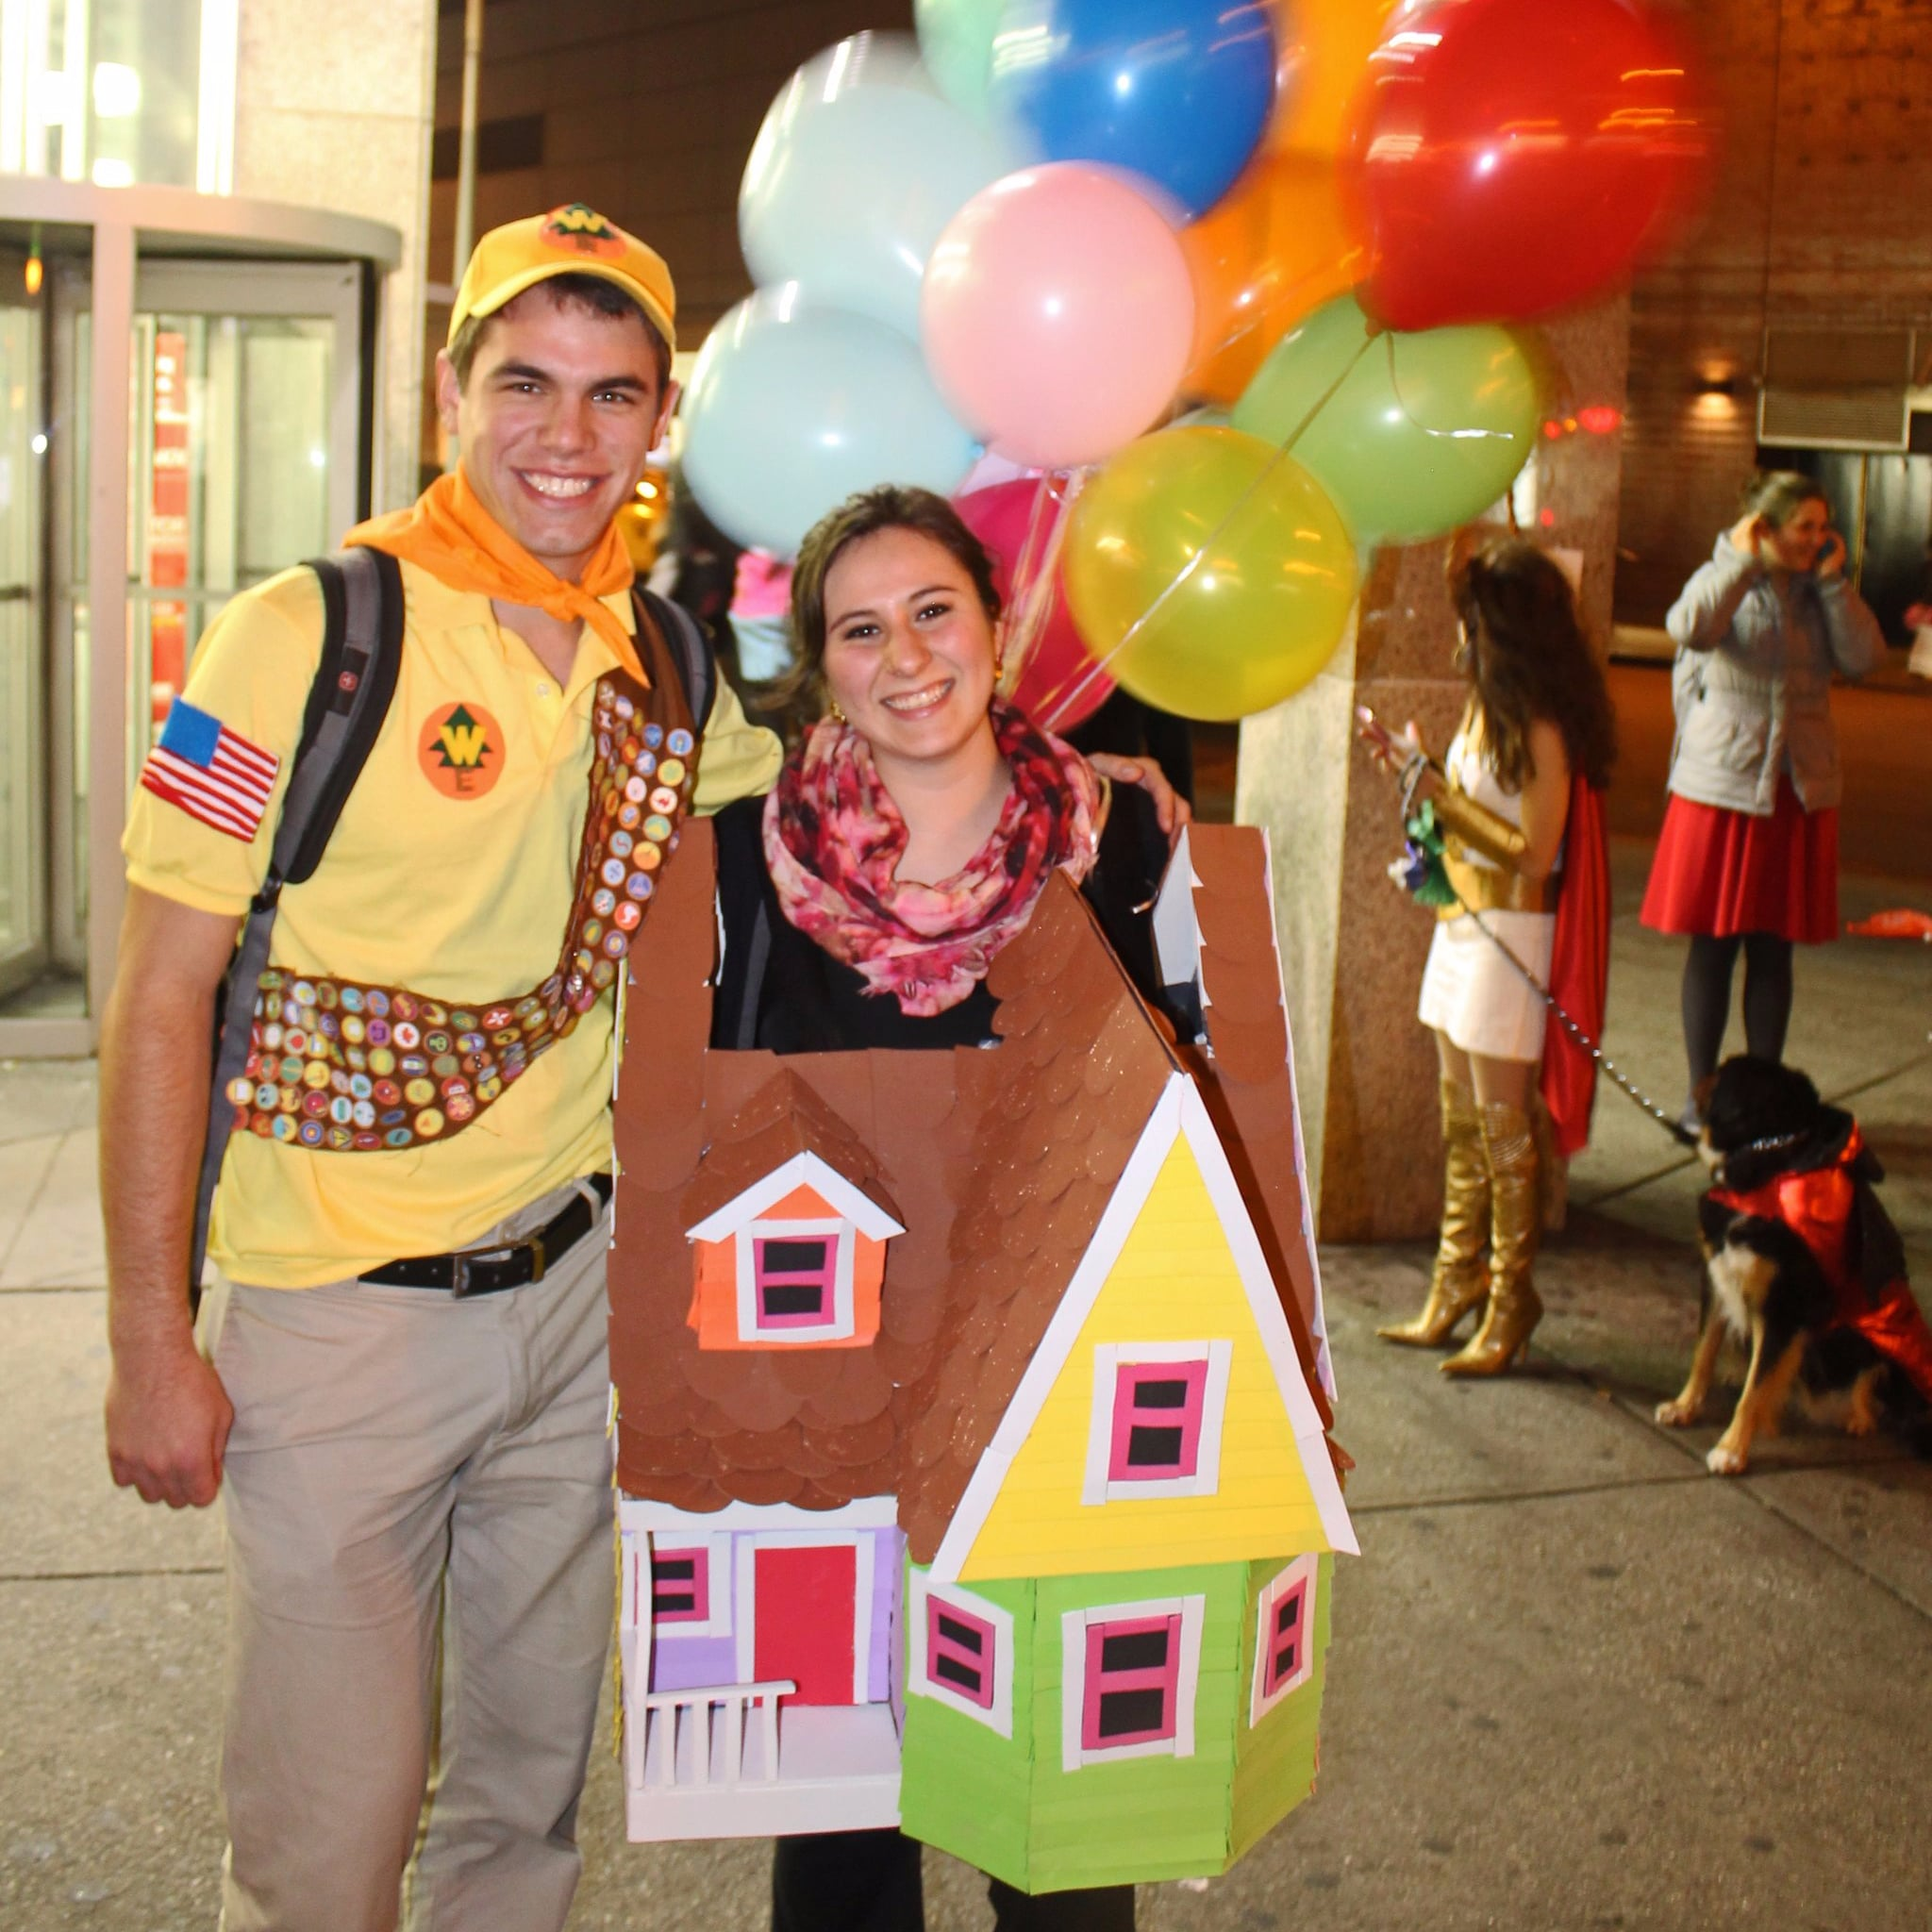 Diy Couple Costumes wwwimgkidcom  The Image Kid Has It! - Cheap Cute Halloween Costumes